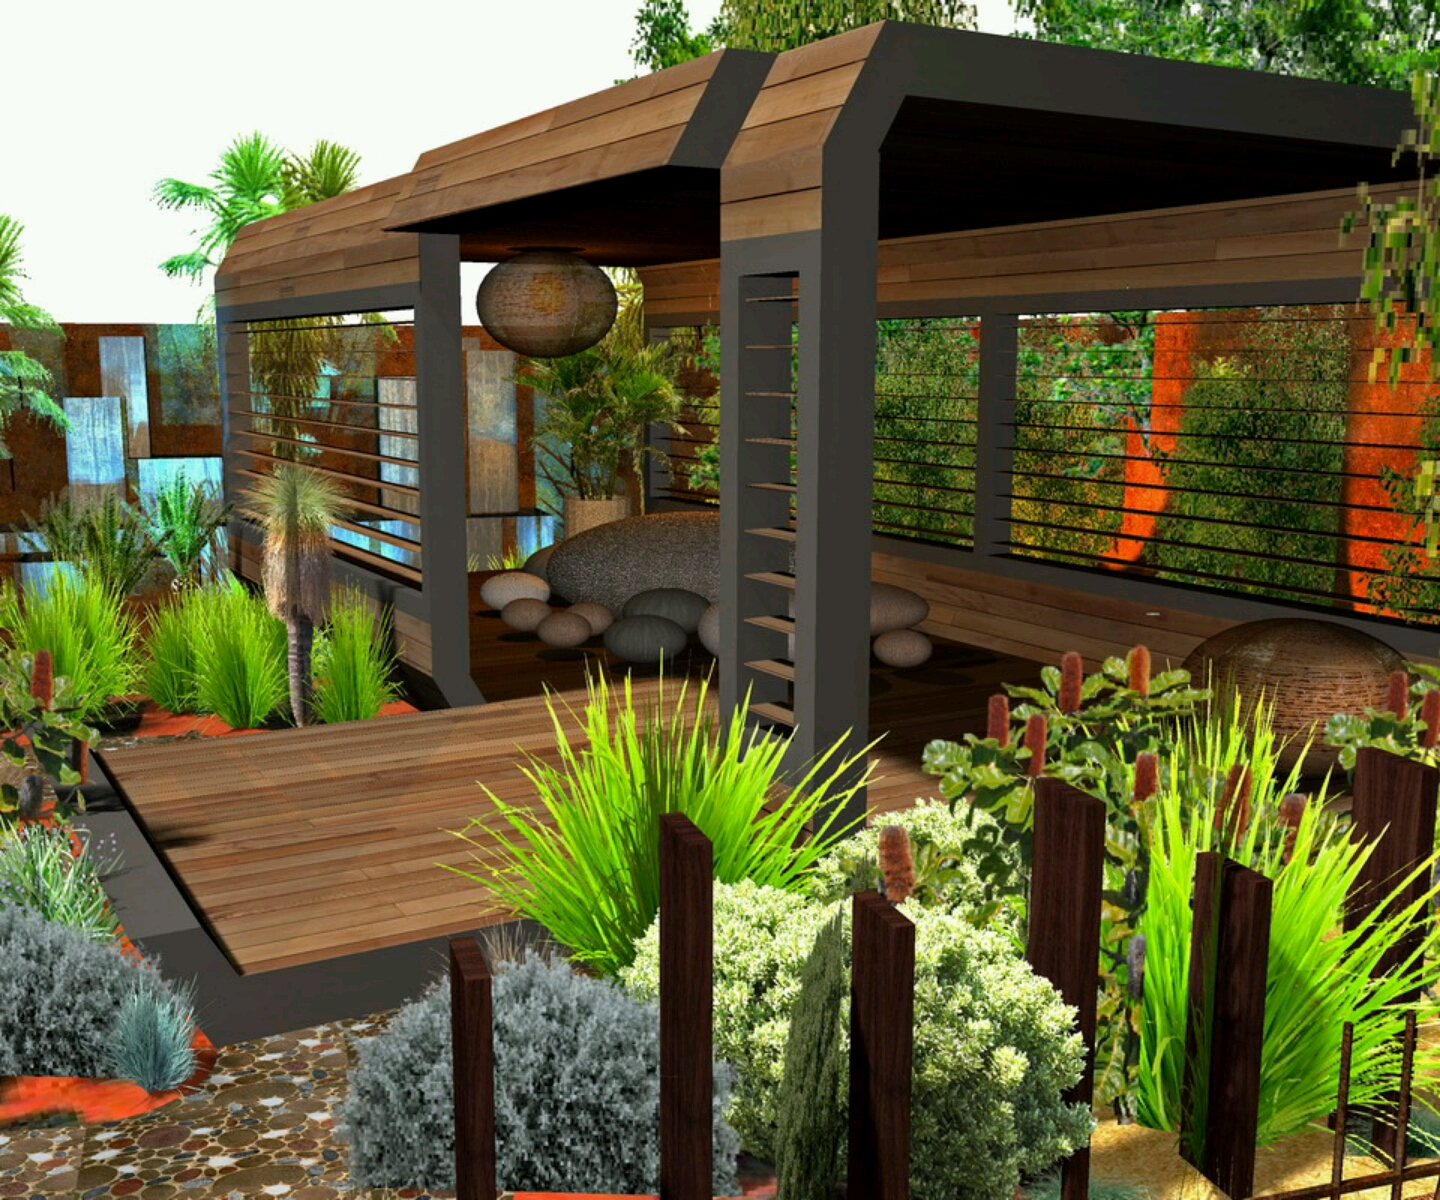 New House Backyard Design : New home designs latest Modern homes garden designs ideas